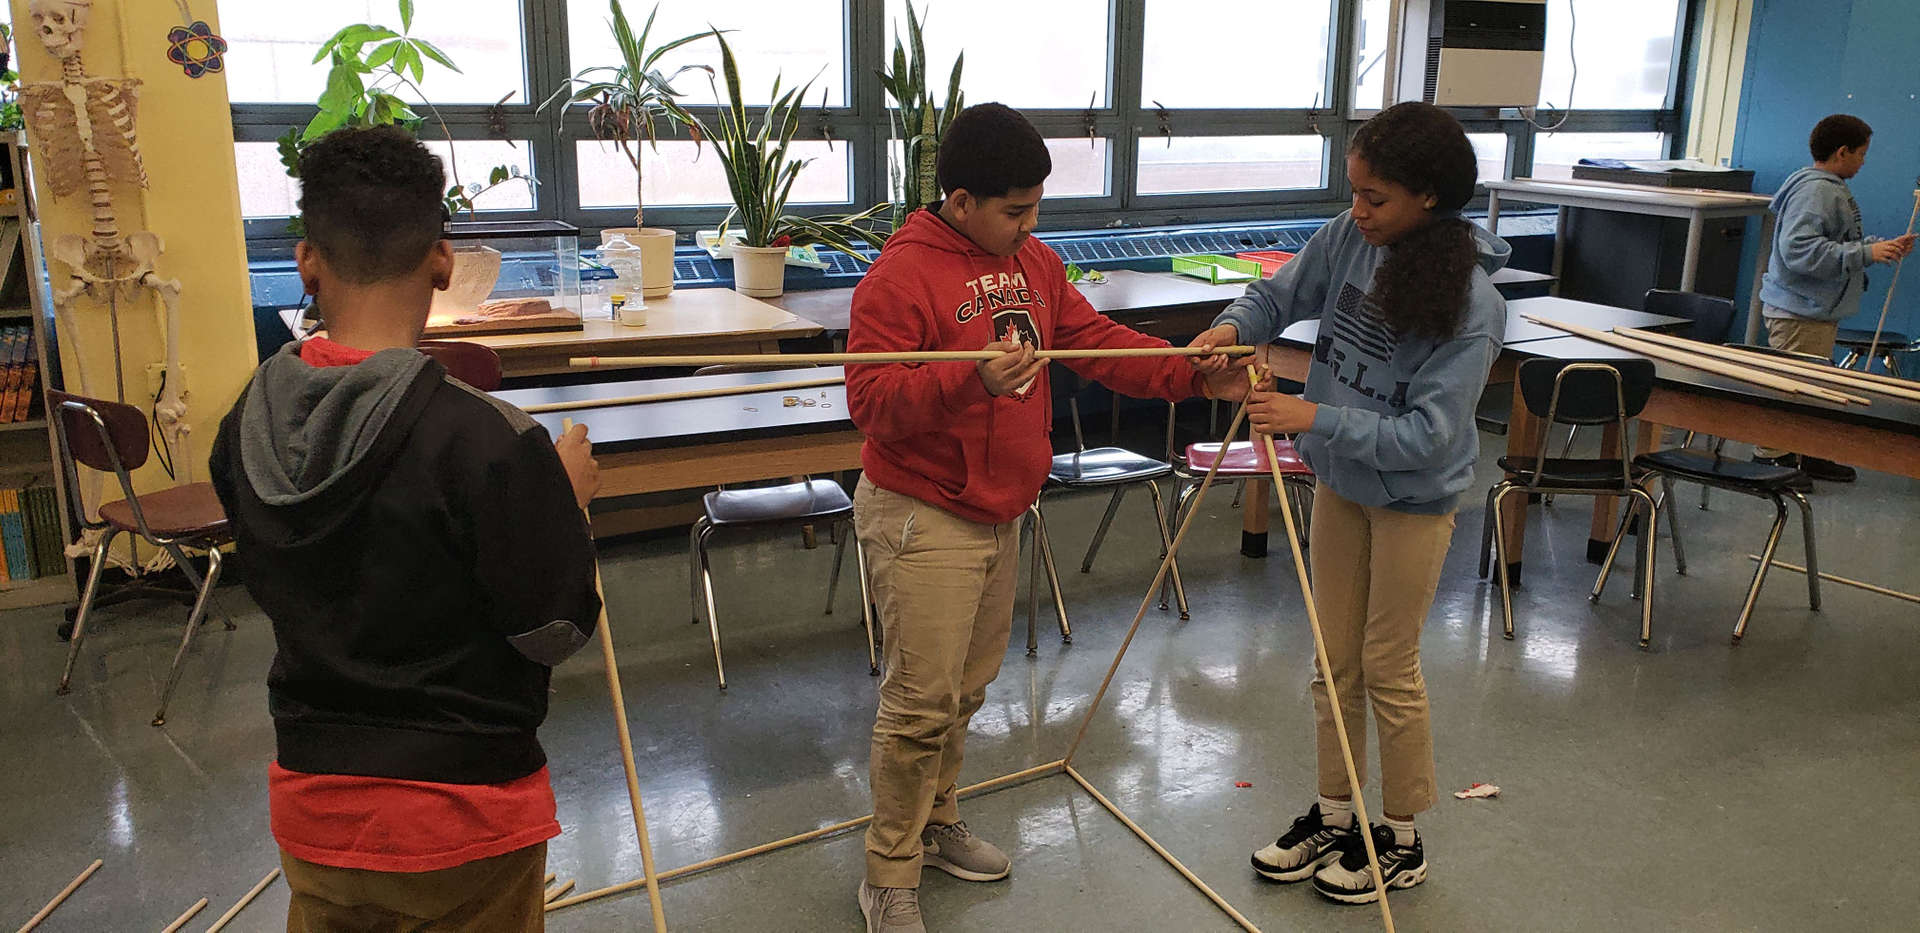 NSLA Students constructing a wooden structure